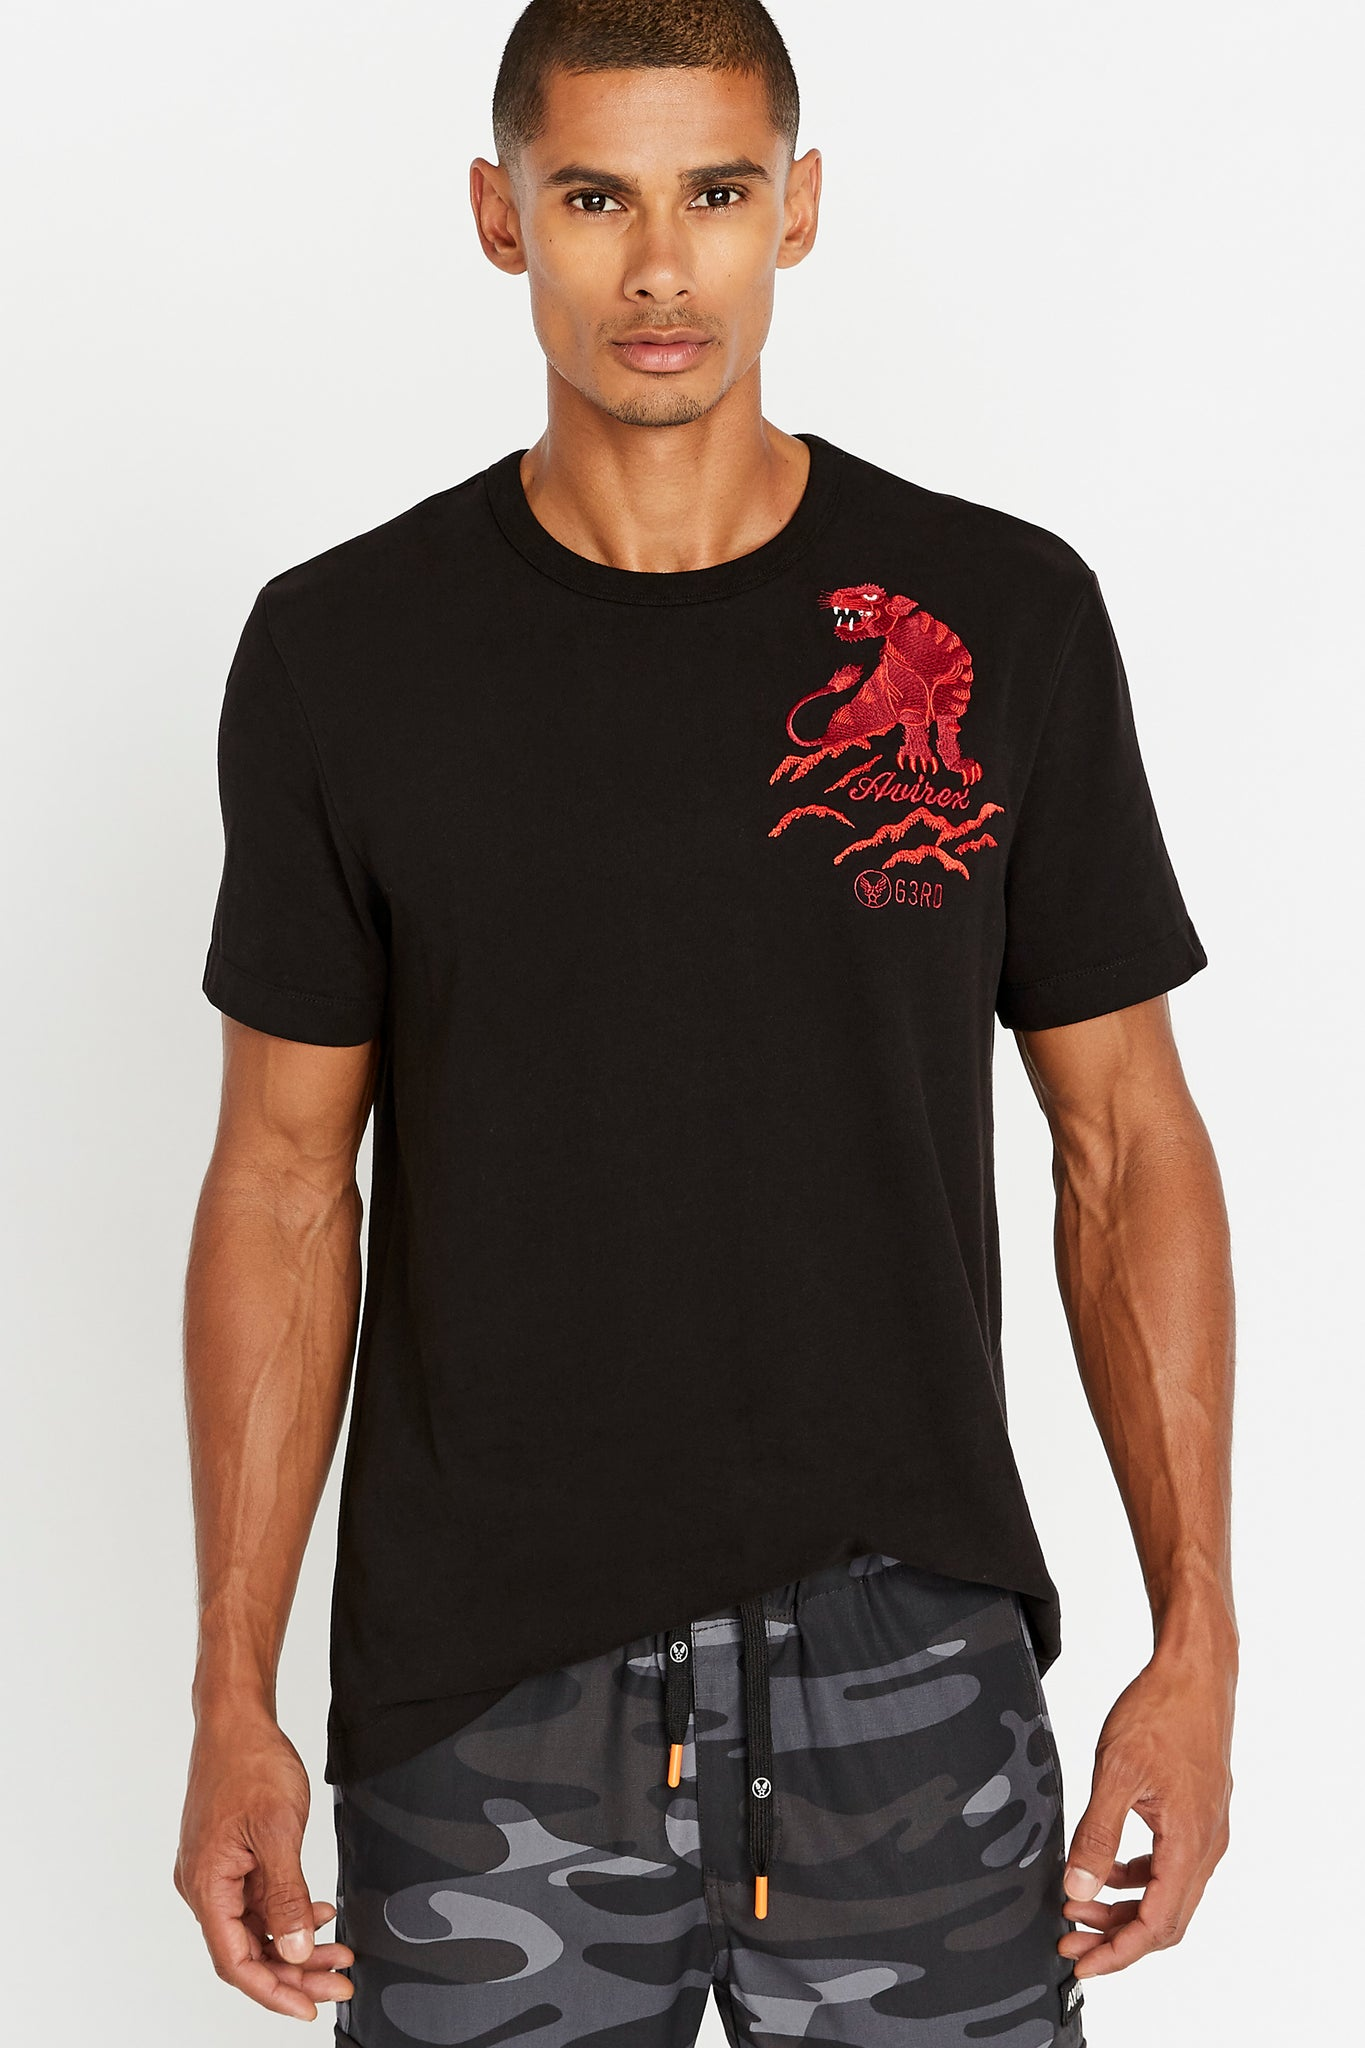 Men wearing a black short sleeve crew neck T-shirt with red panther embroidery on left chest